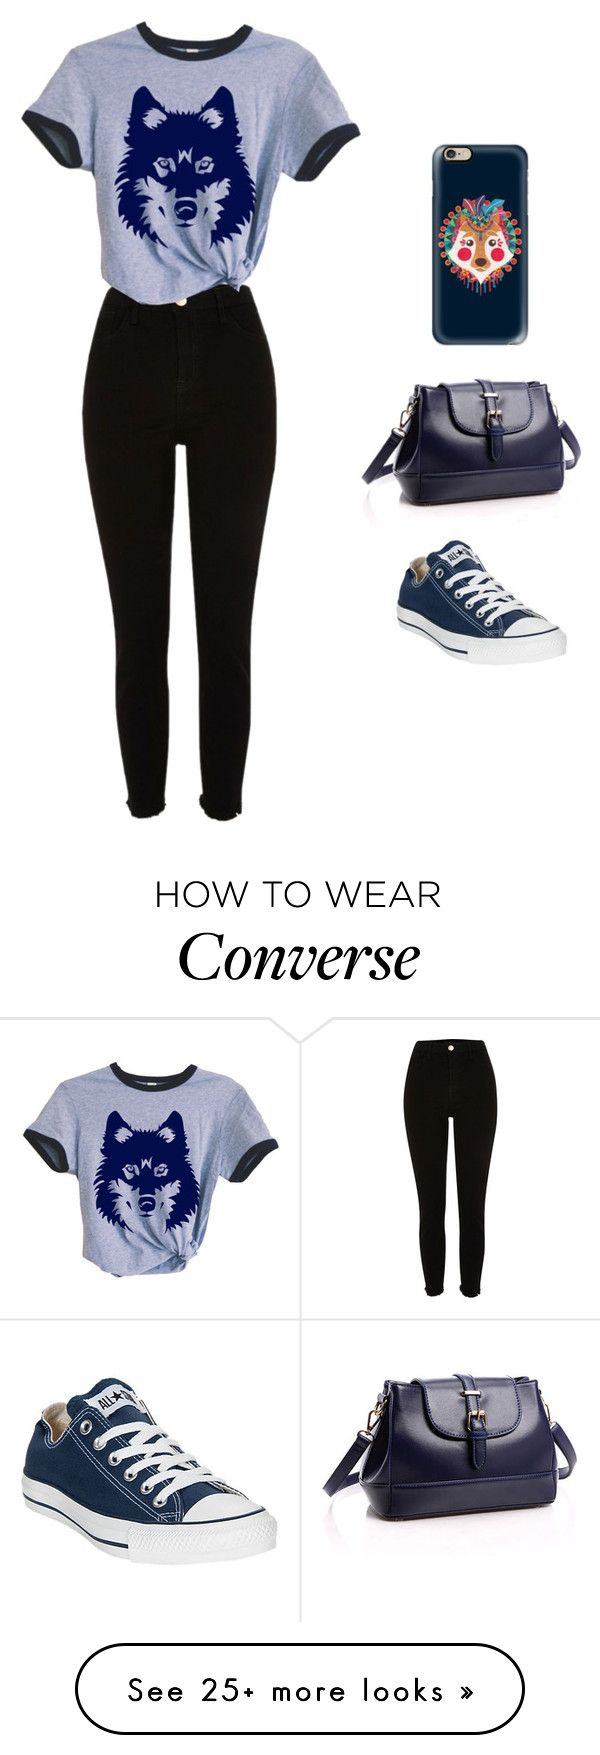 """Untitled #89"" by lghedger on Polyvore featuring River Island, Converse and Casetify"